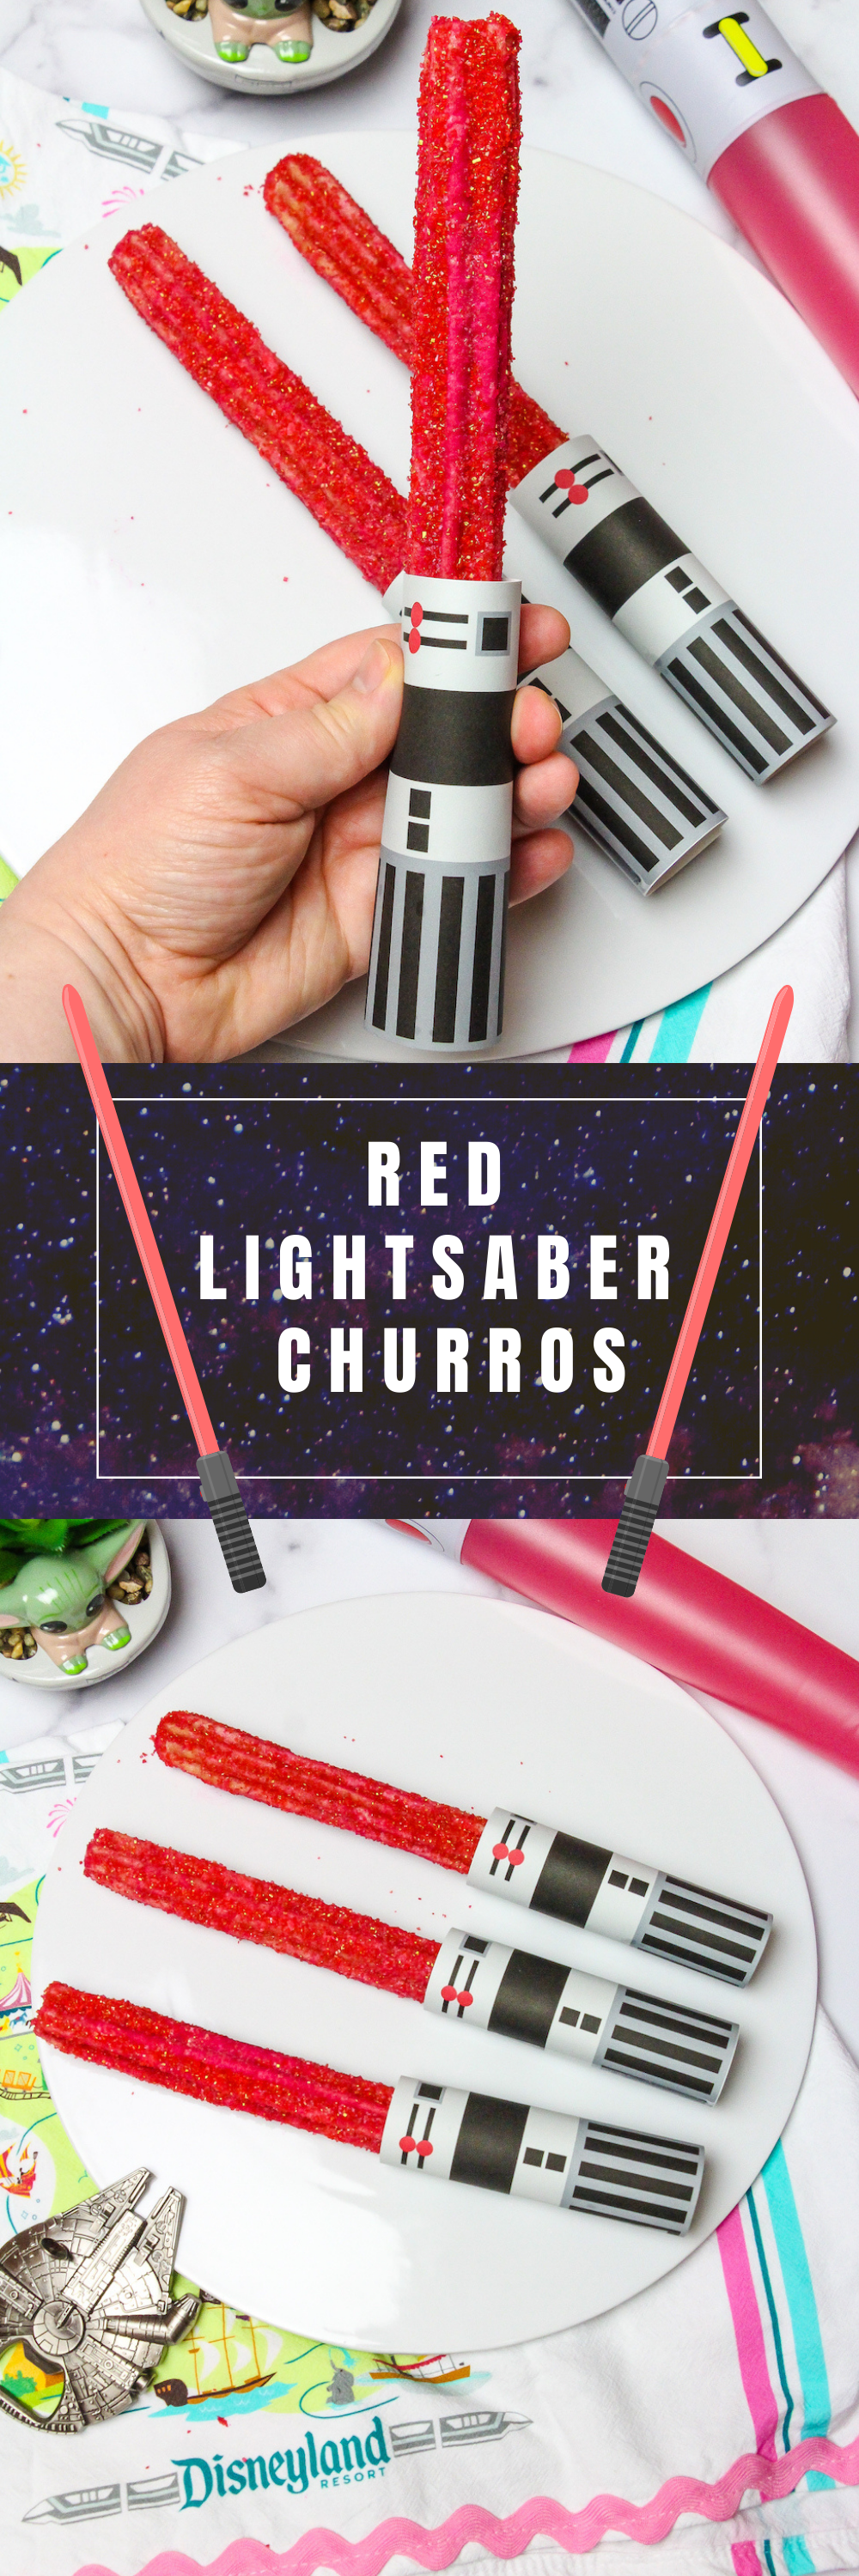 Red Lightsaber Churro Pin